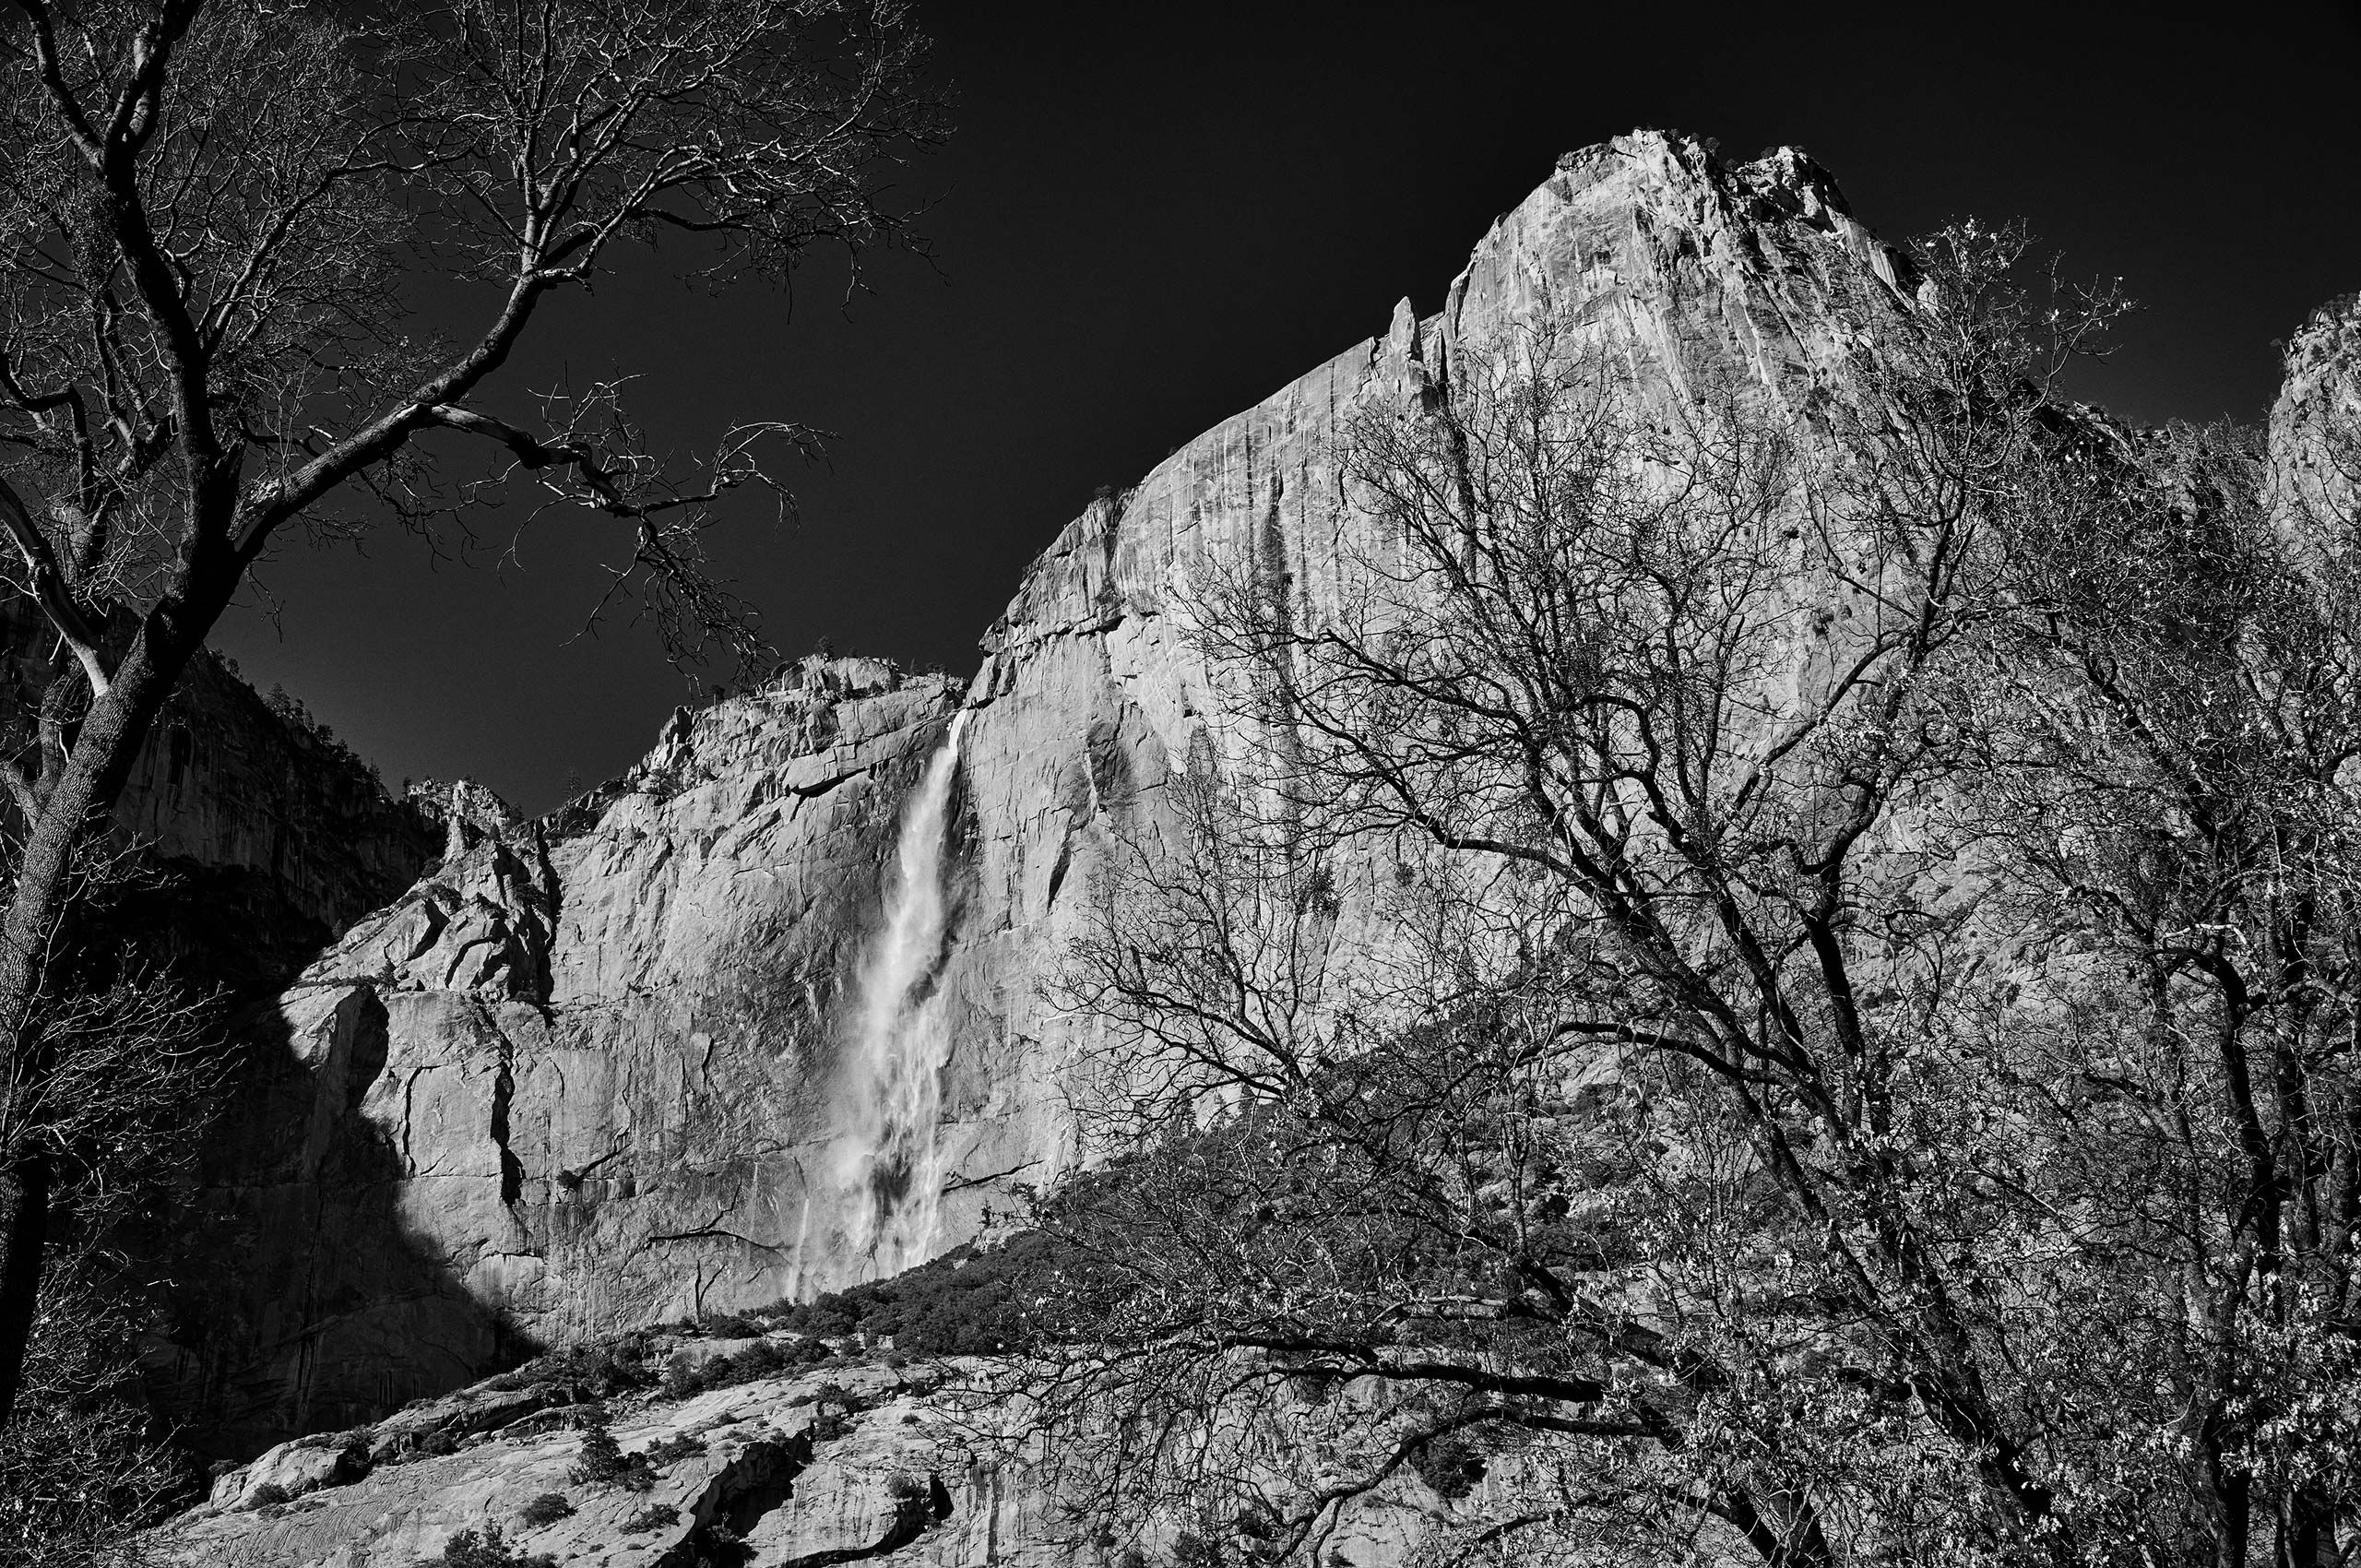 YOSEMITE_VALLEY_0080.jpg